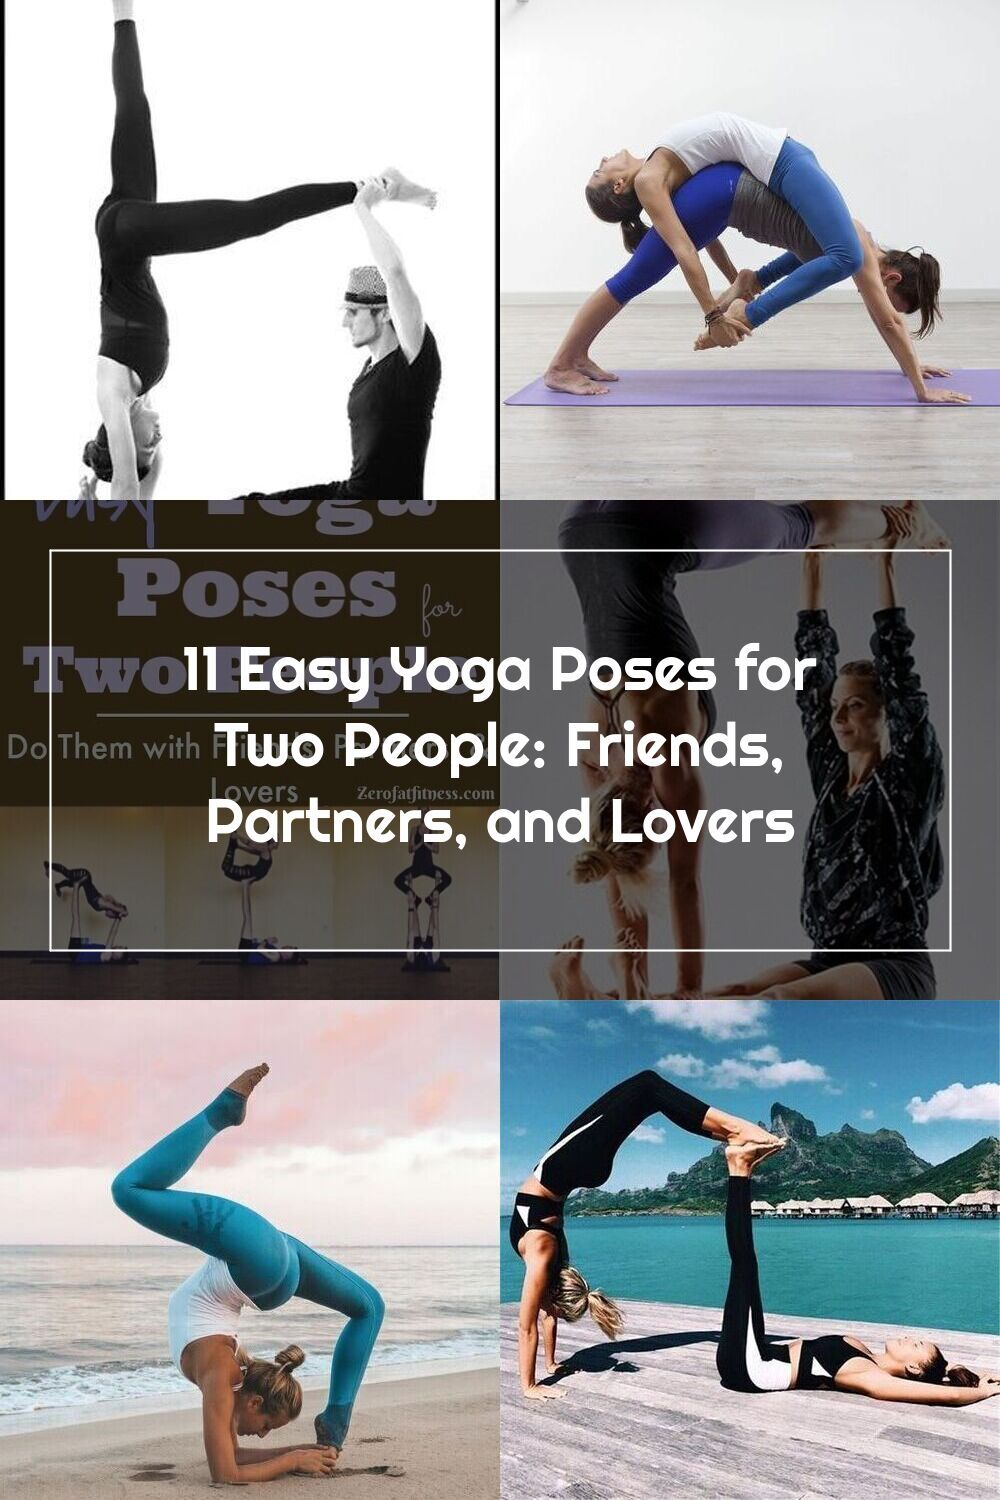 40 Easy Yoga Poses for Two People: Friends, Partners, and this